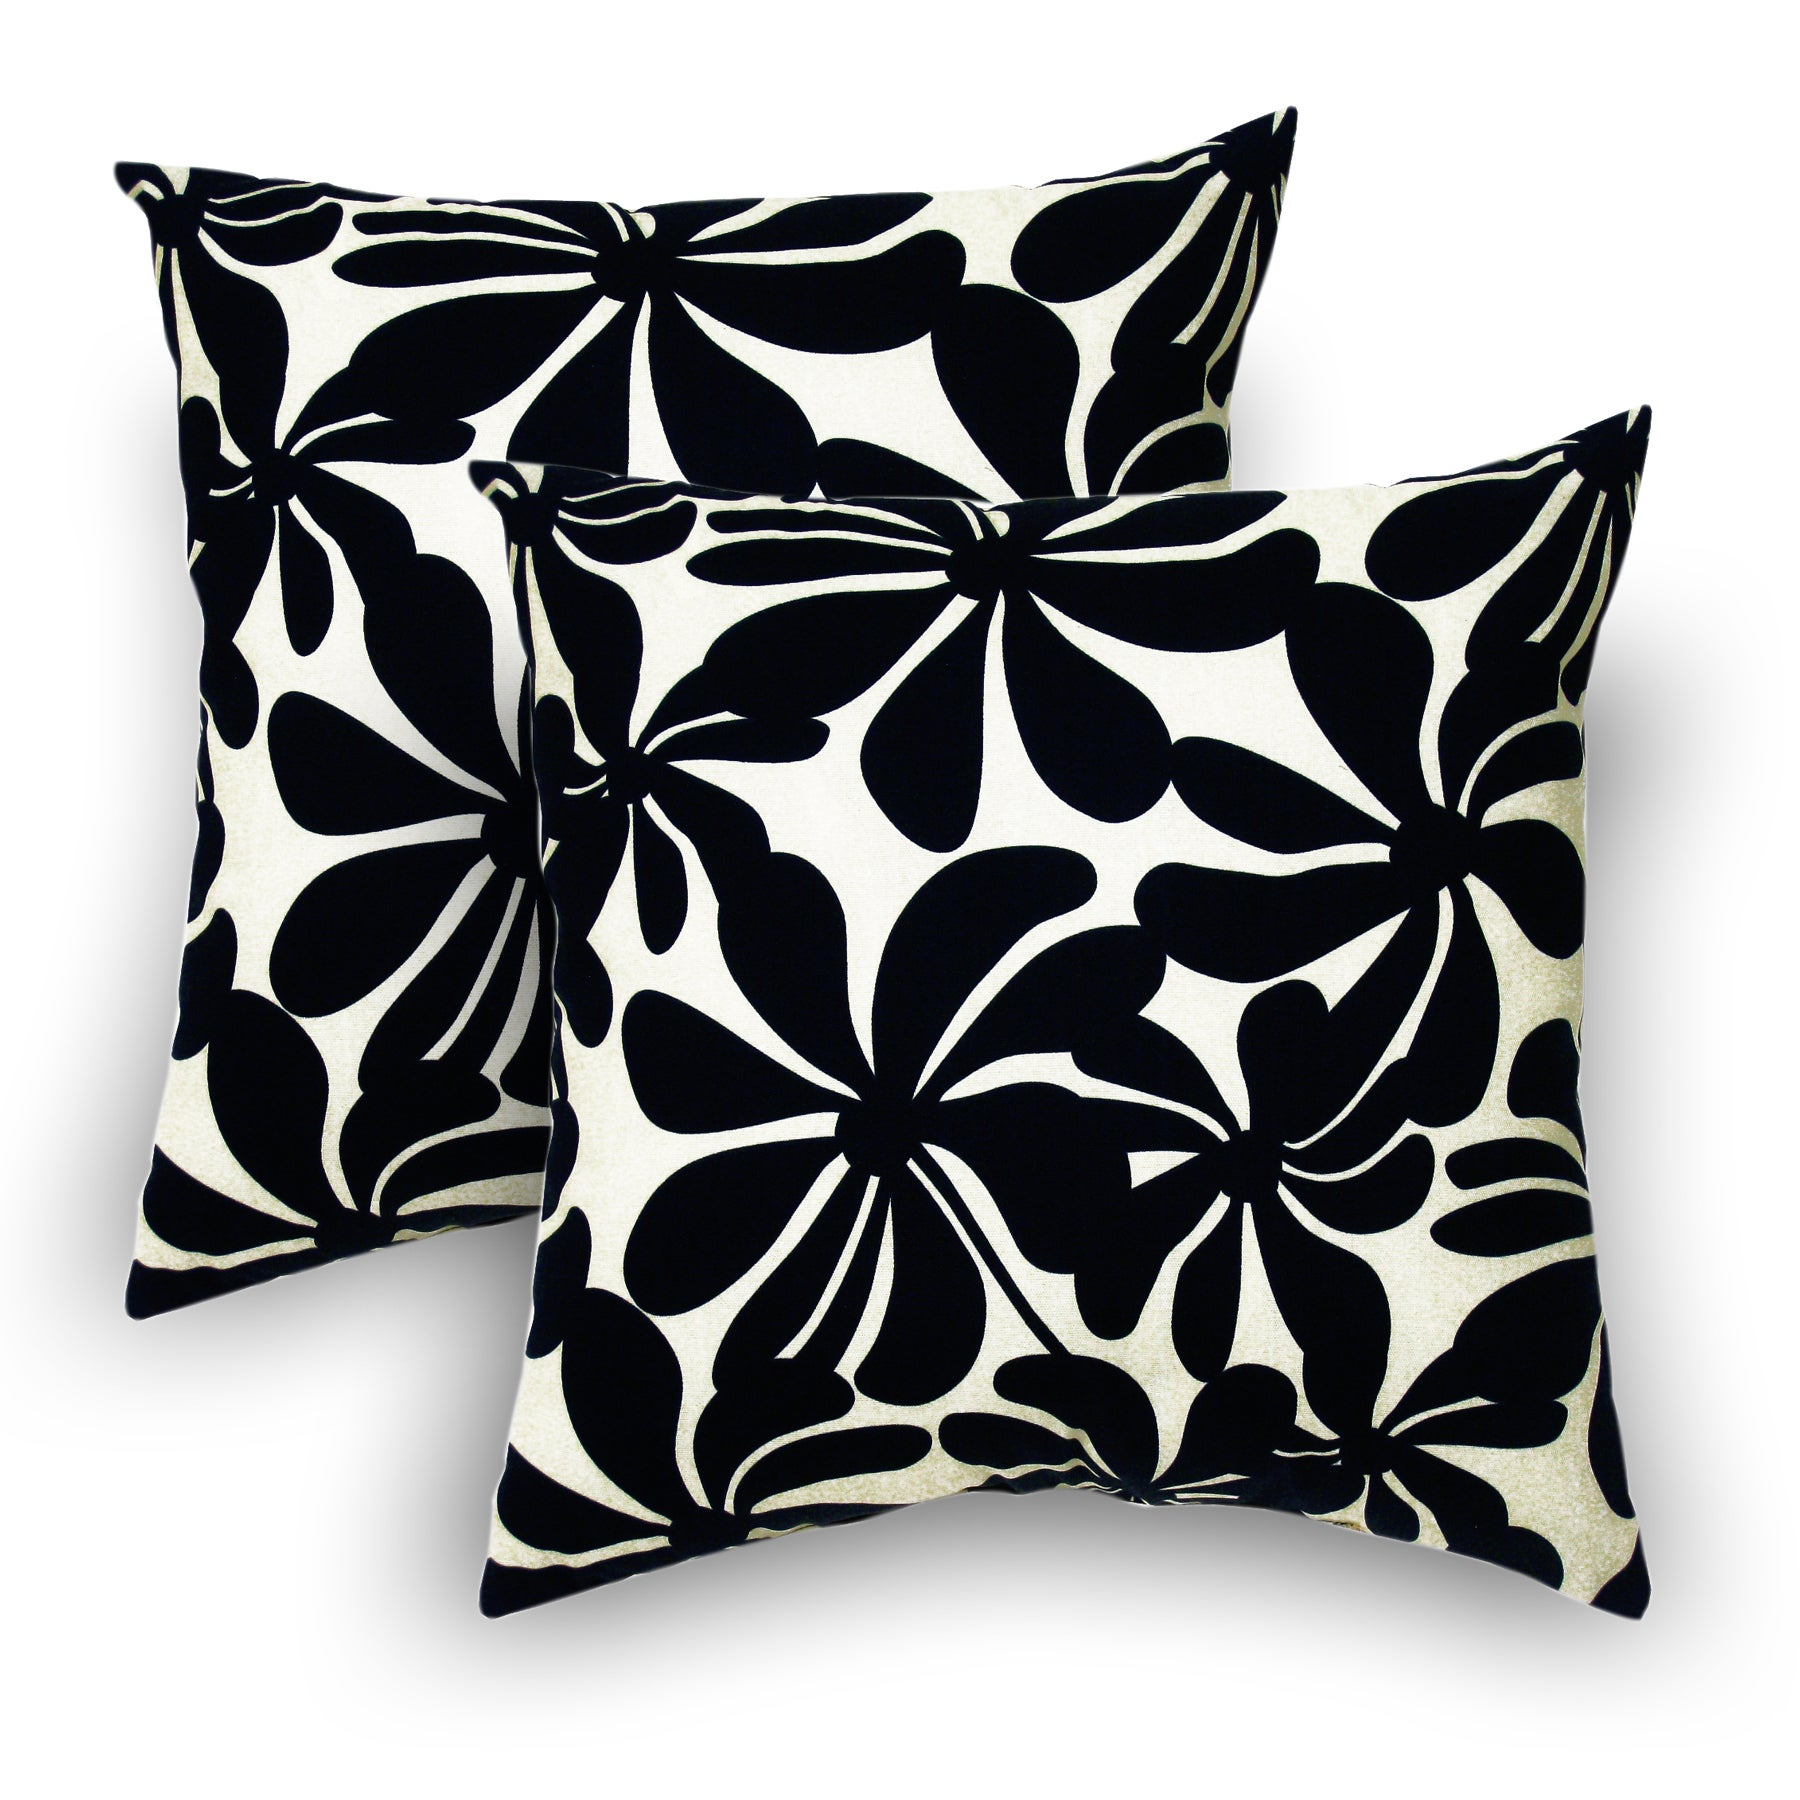 Twirly Polyester Black Outdoor Decorative Pillows Set Of 2 Overstock 7136500